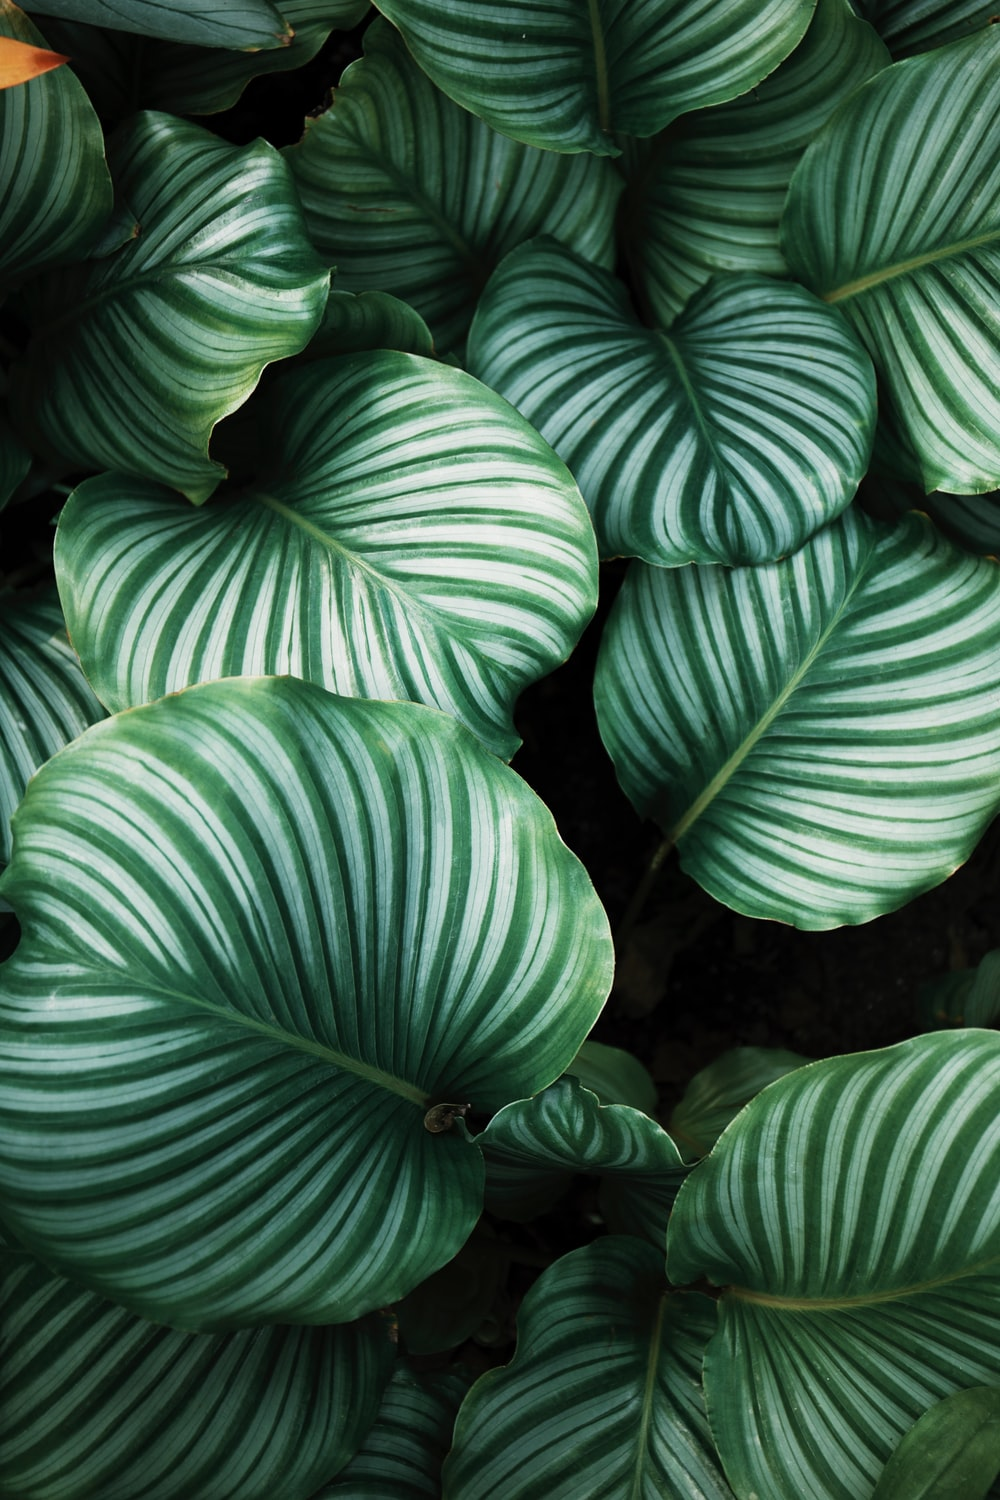 green and white leafed plants